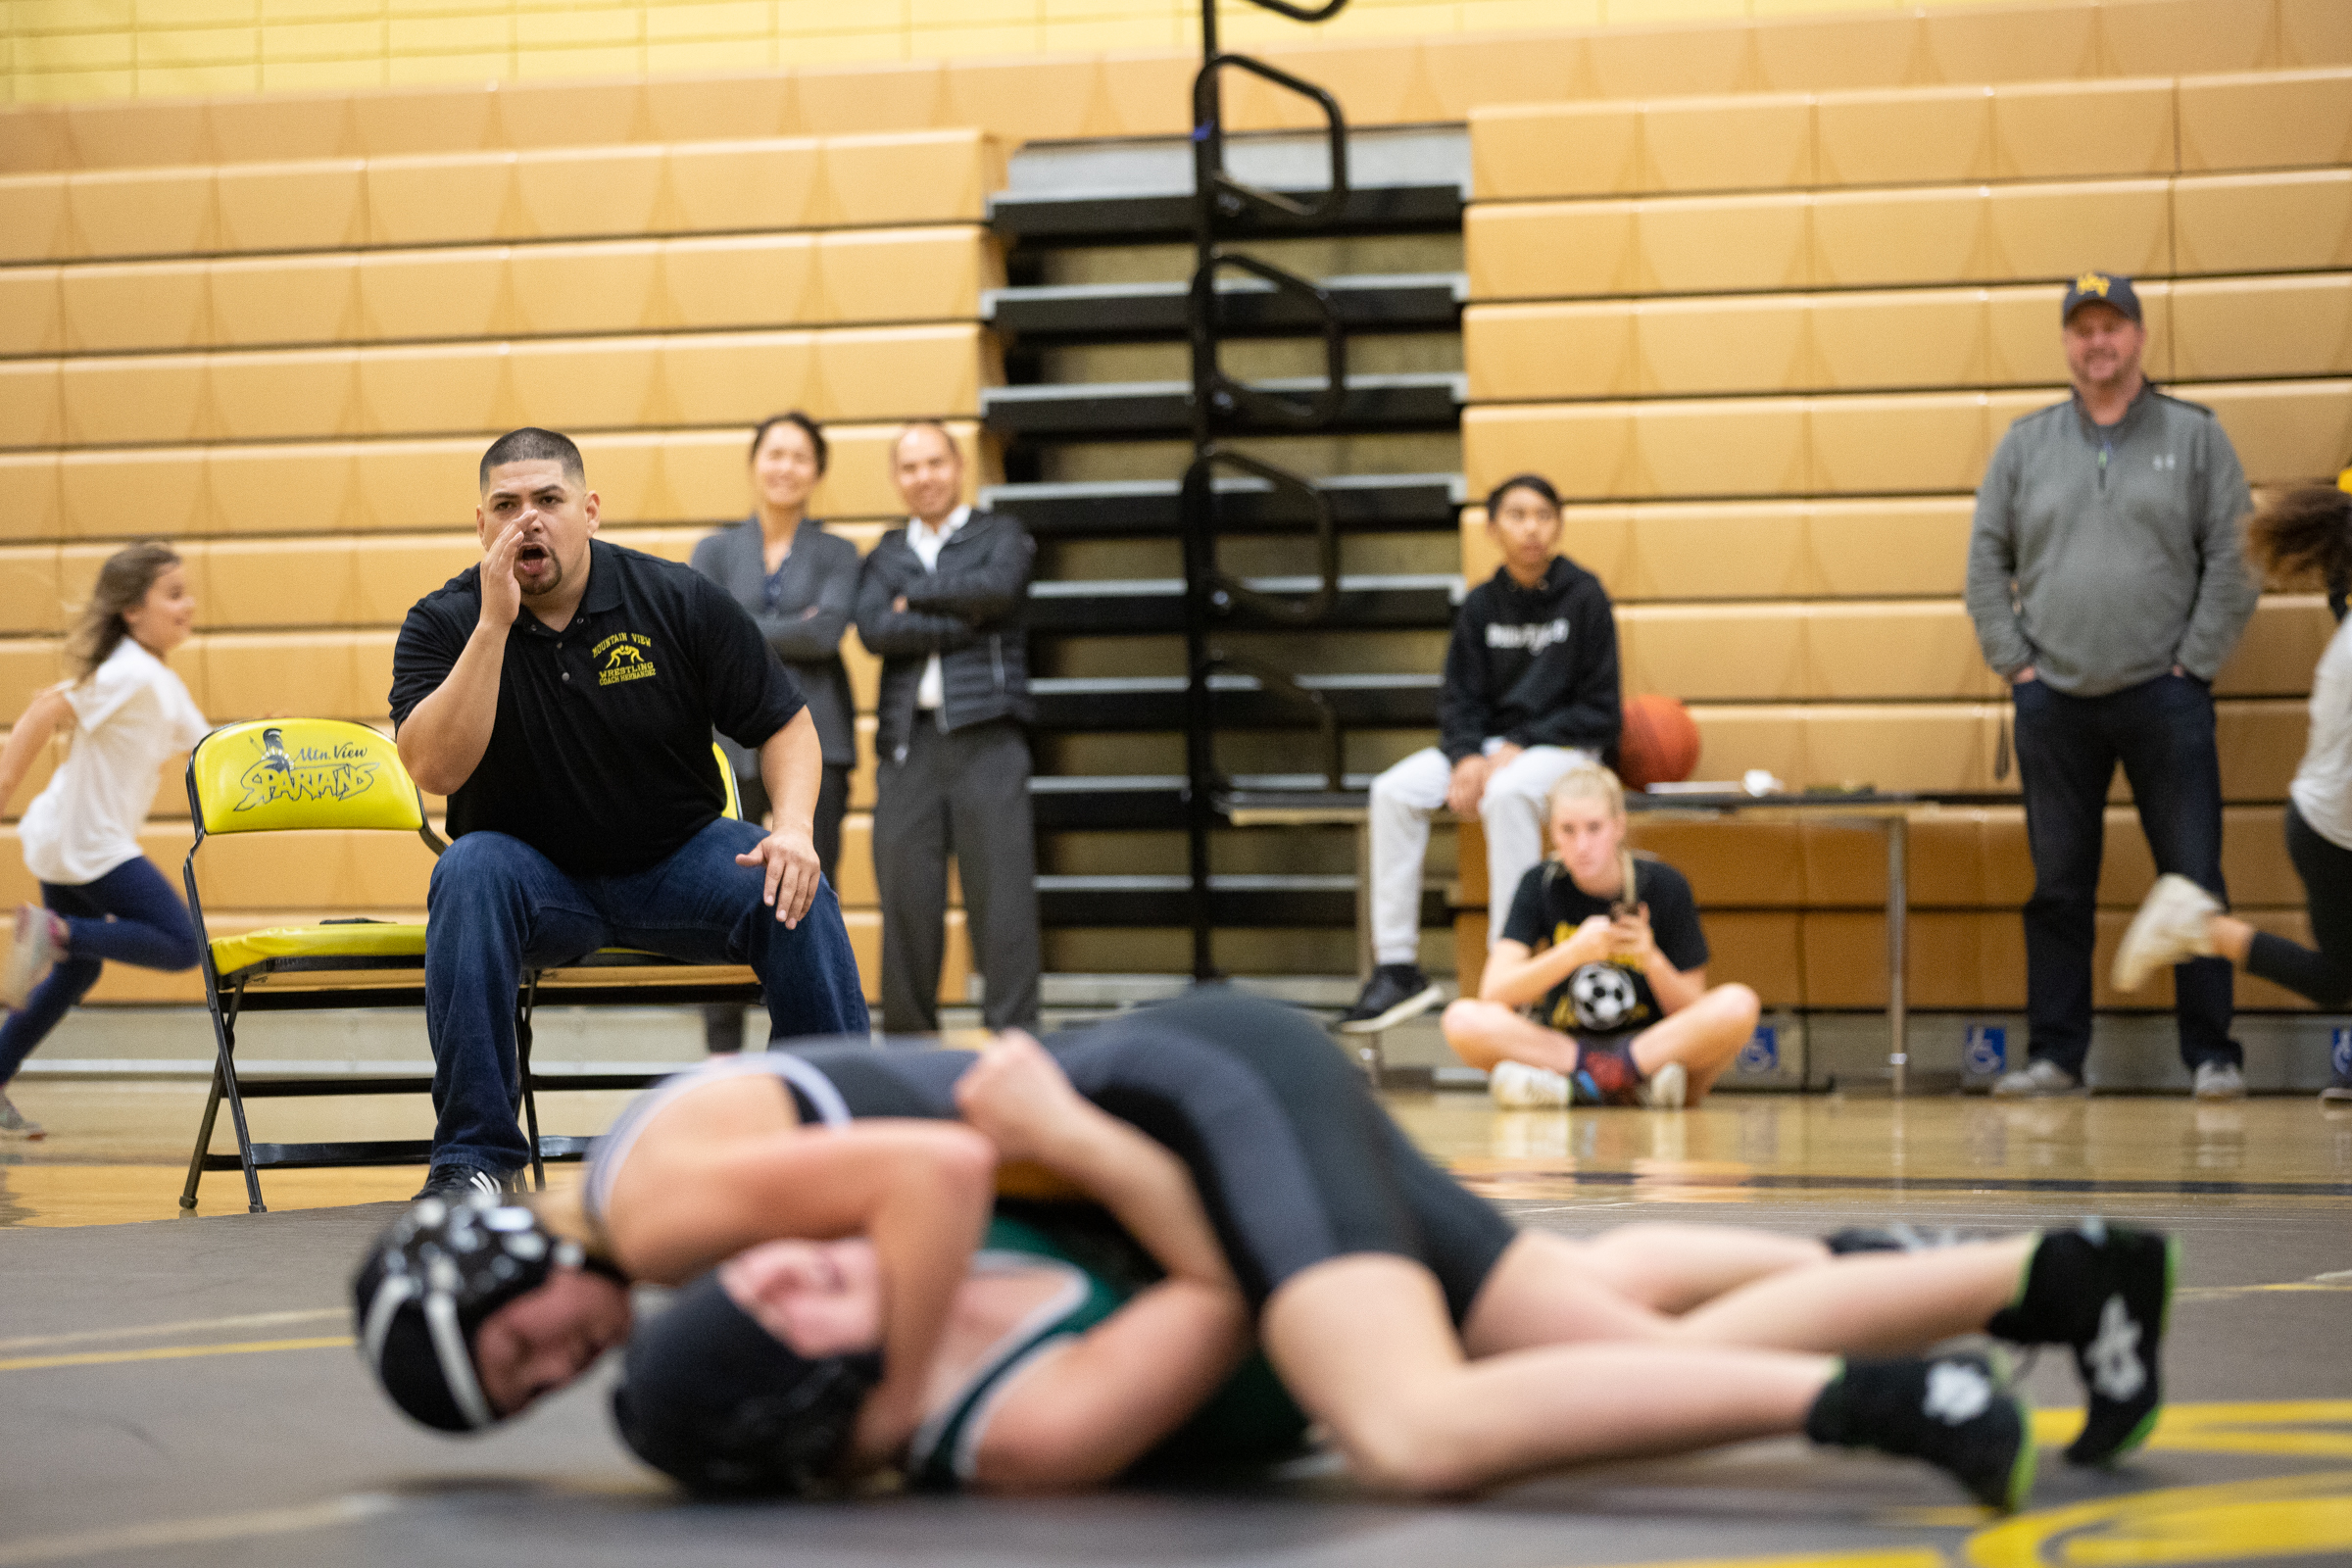 Francisco Hernandez, Mountain View High School's wrestling coach, encourages Paris Harrell during a fight against Ava Aufderheide, a student from Homestead High School, during a home meet in Mountain View, California, on Jan. 31. Seconds later, Harrell pinned Aufderheide and won her first fight of the season.